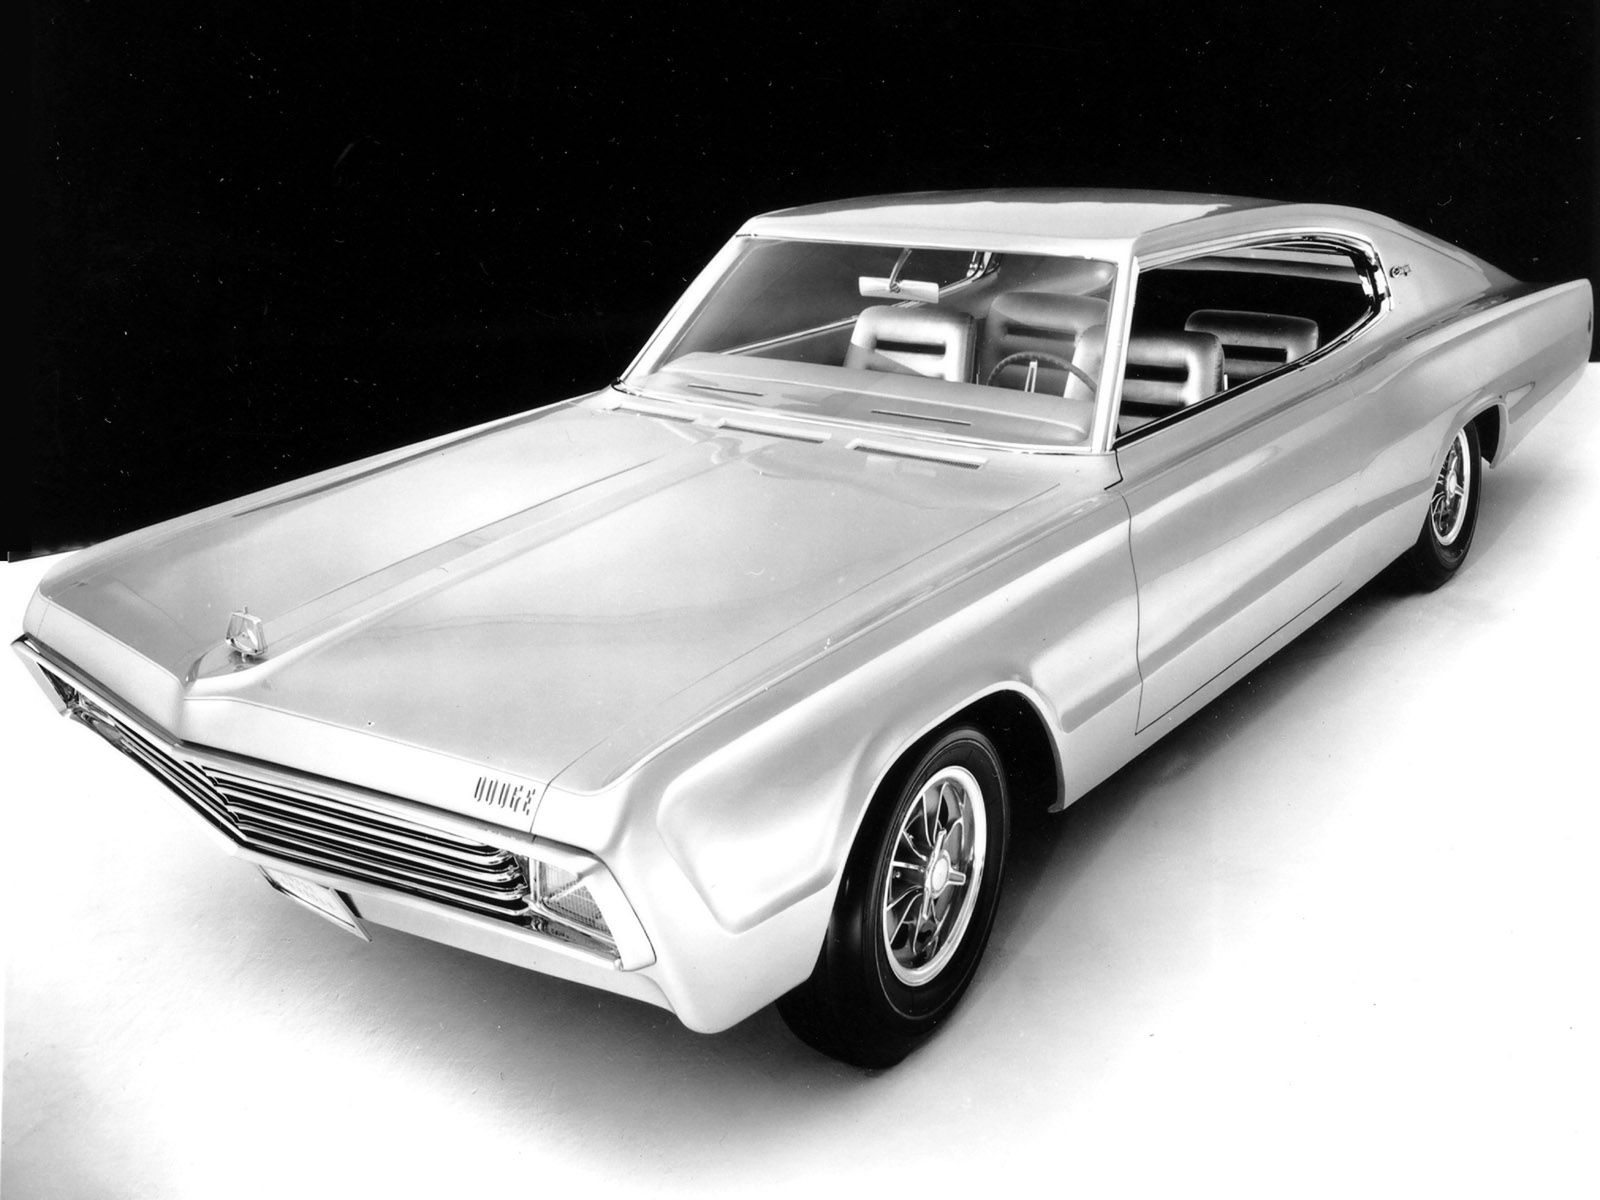 1965 dodge charger ii concept